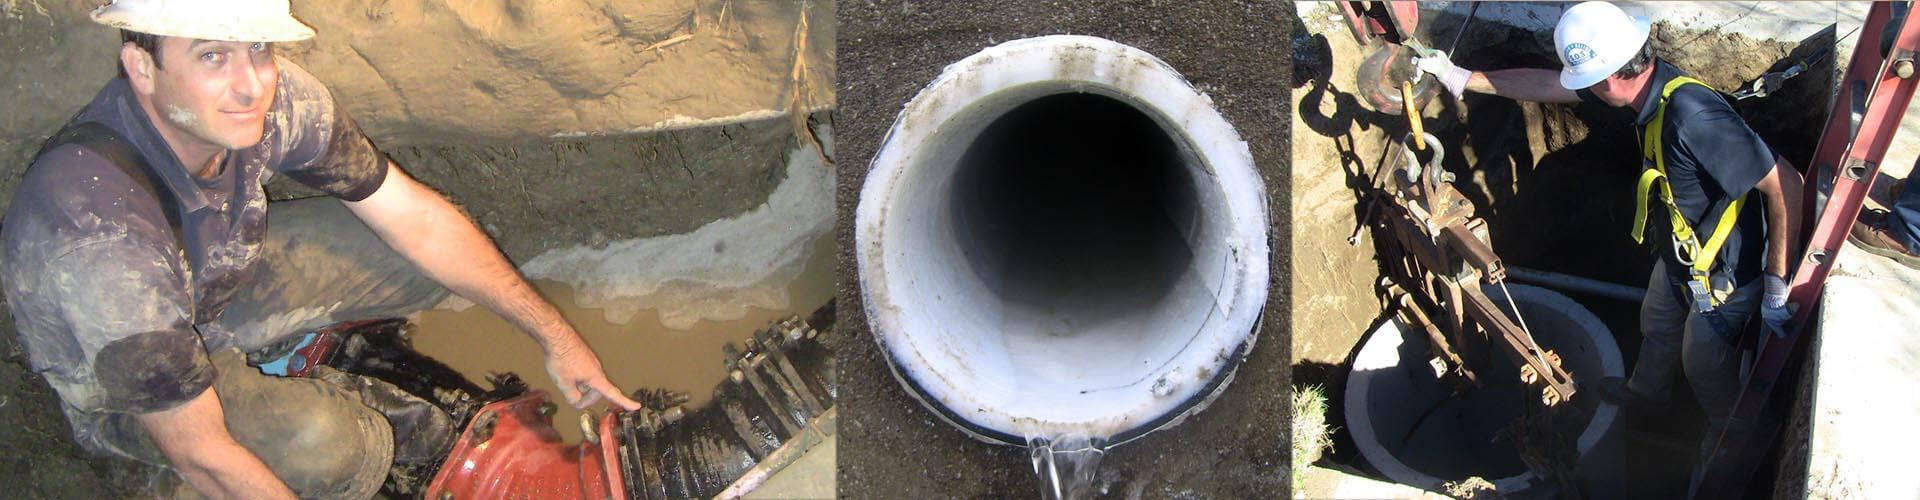 Sewer Repair Services In Orange County